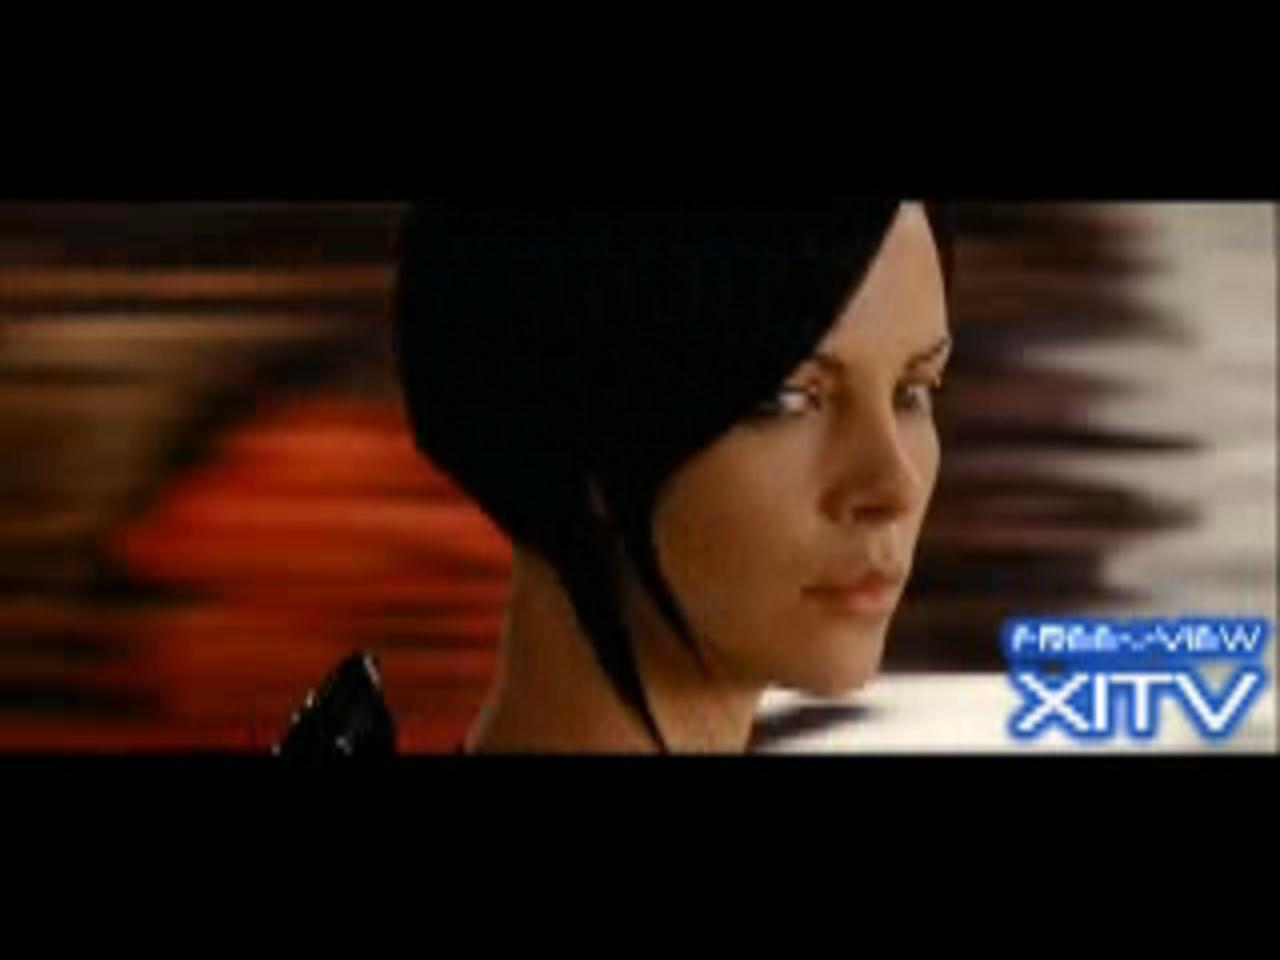 XITV FREE <> VIEW Aeon Flux! Starring Charlize Theron! XITV Is Must See TV!